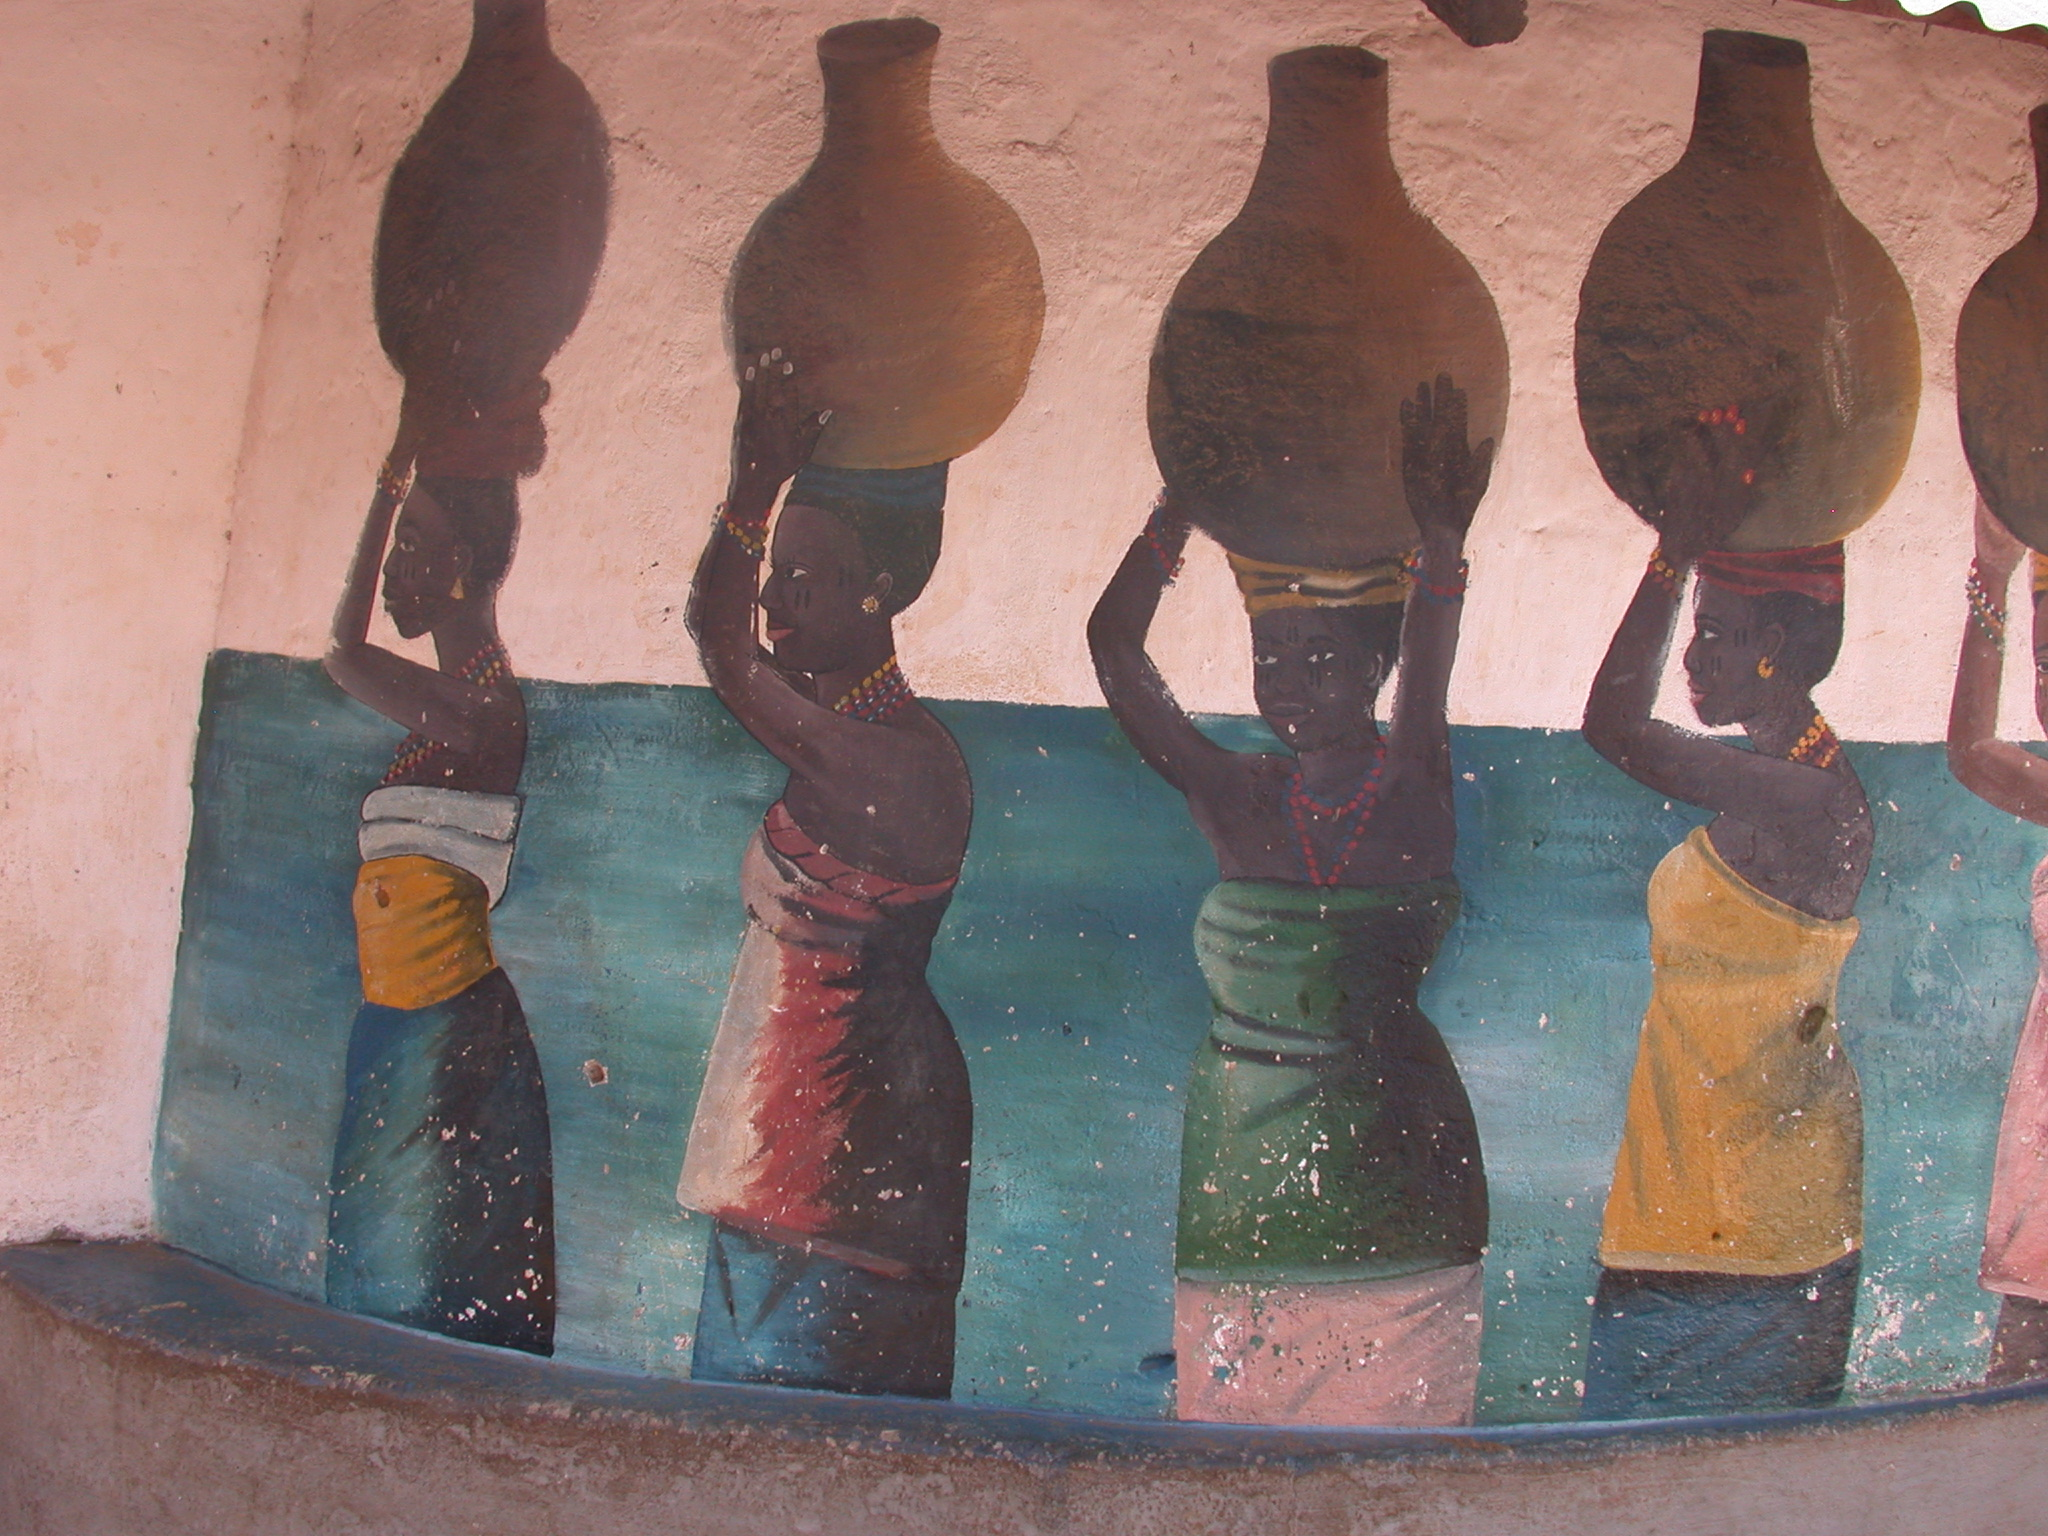 Mural of Women Carrying Jars on Their Heads, Daagbo Hounon Dodo Palace, Ouidah, Benin